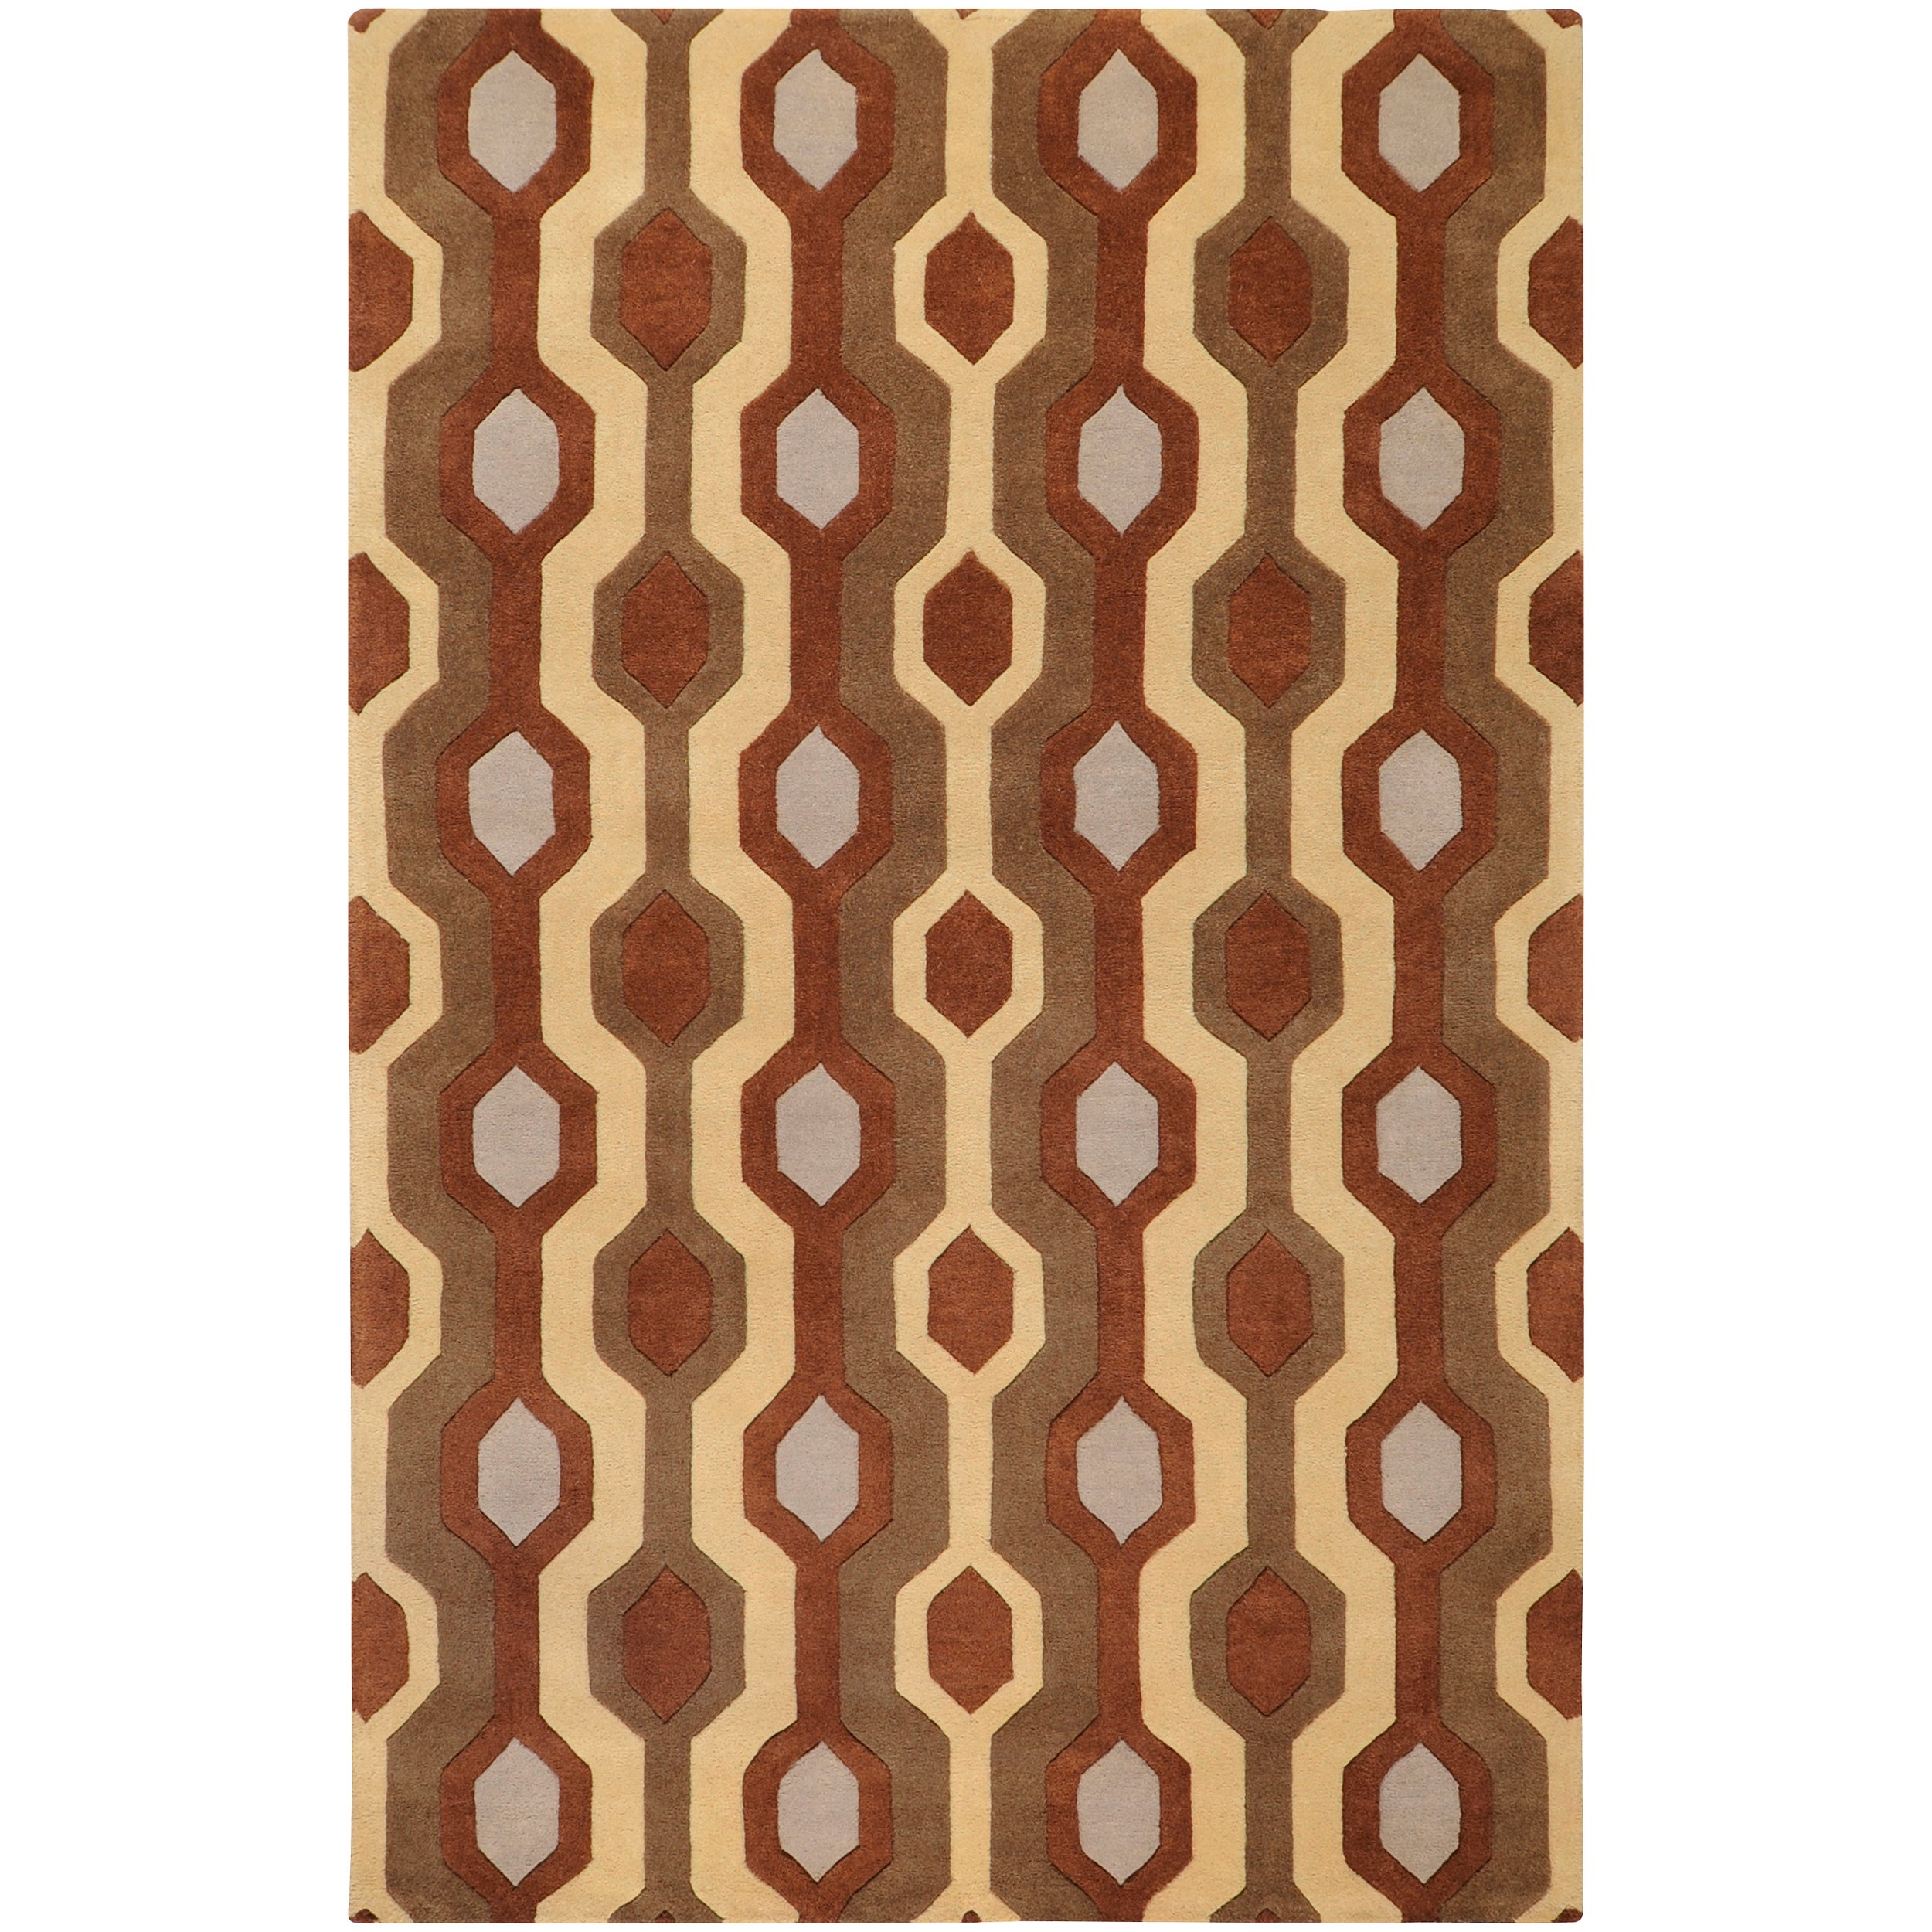 Hand-tufted Brown Contemporary Bamra Wool Geometric Rug (10' x 14')